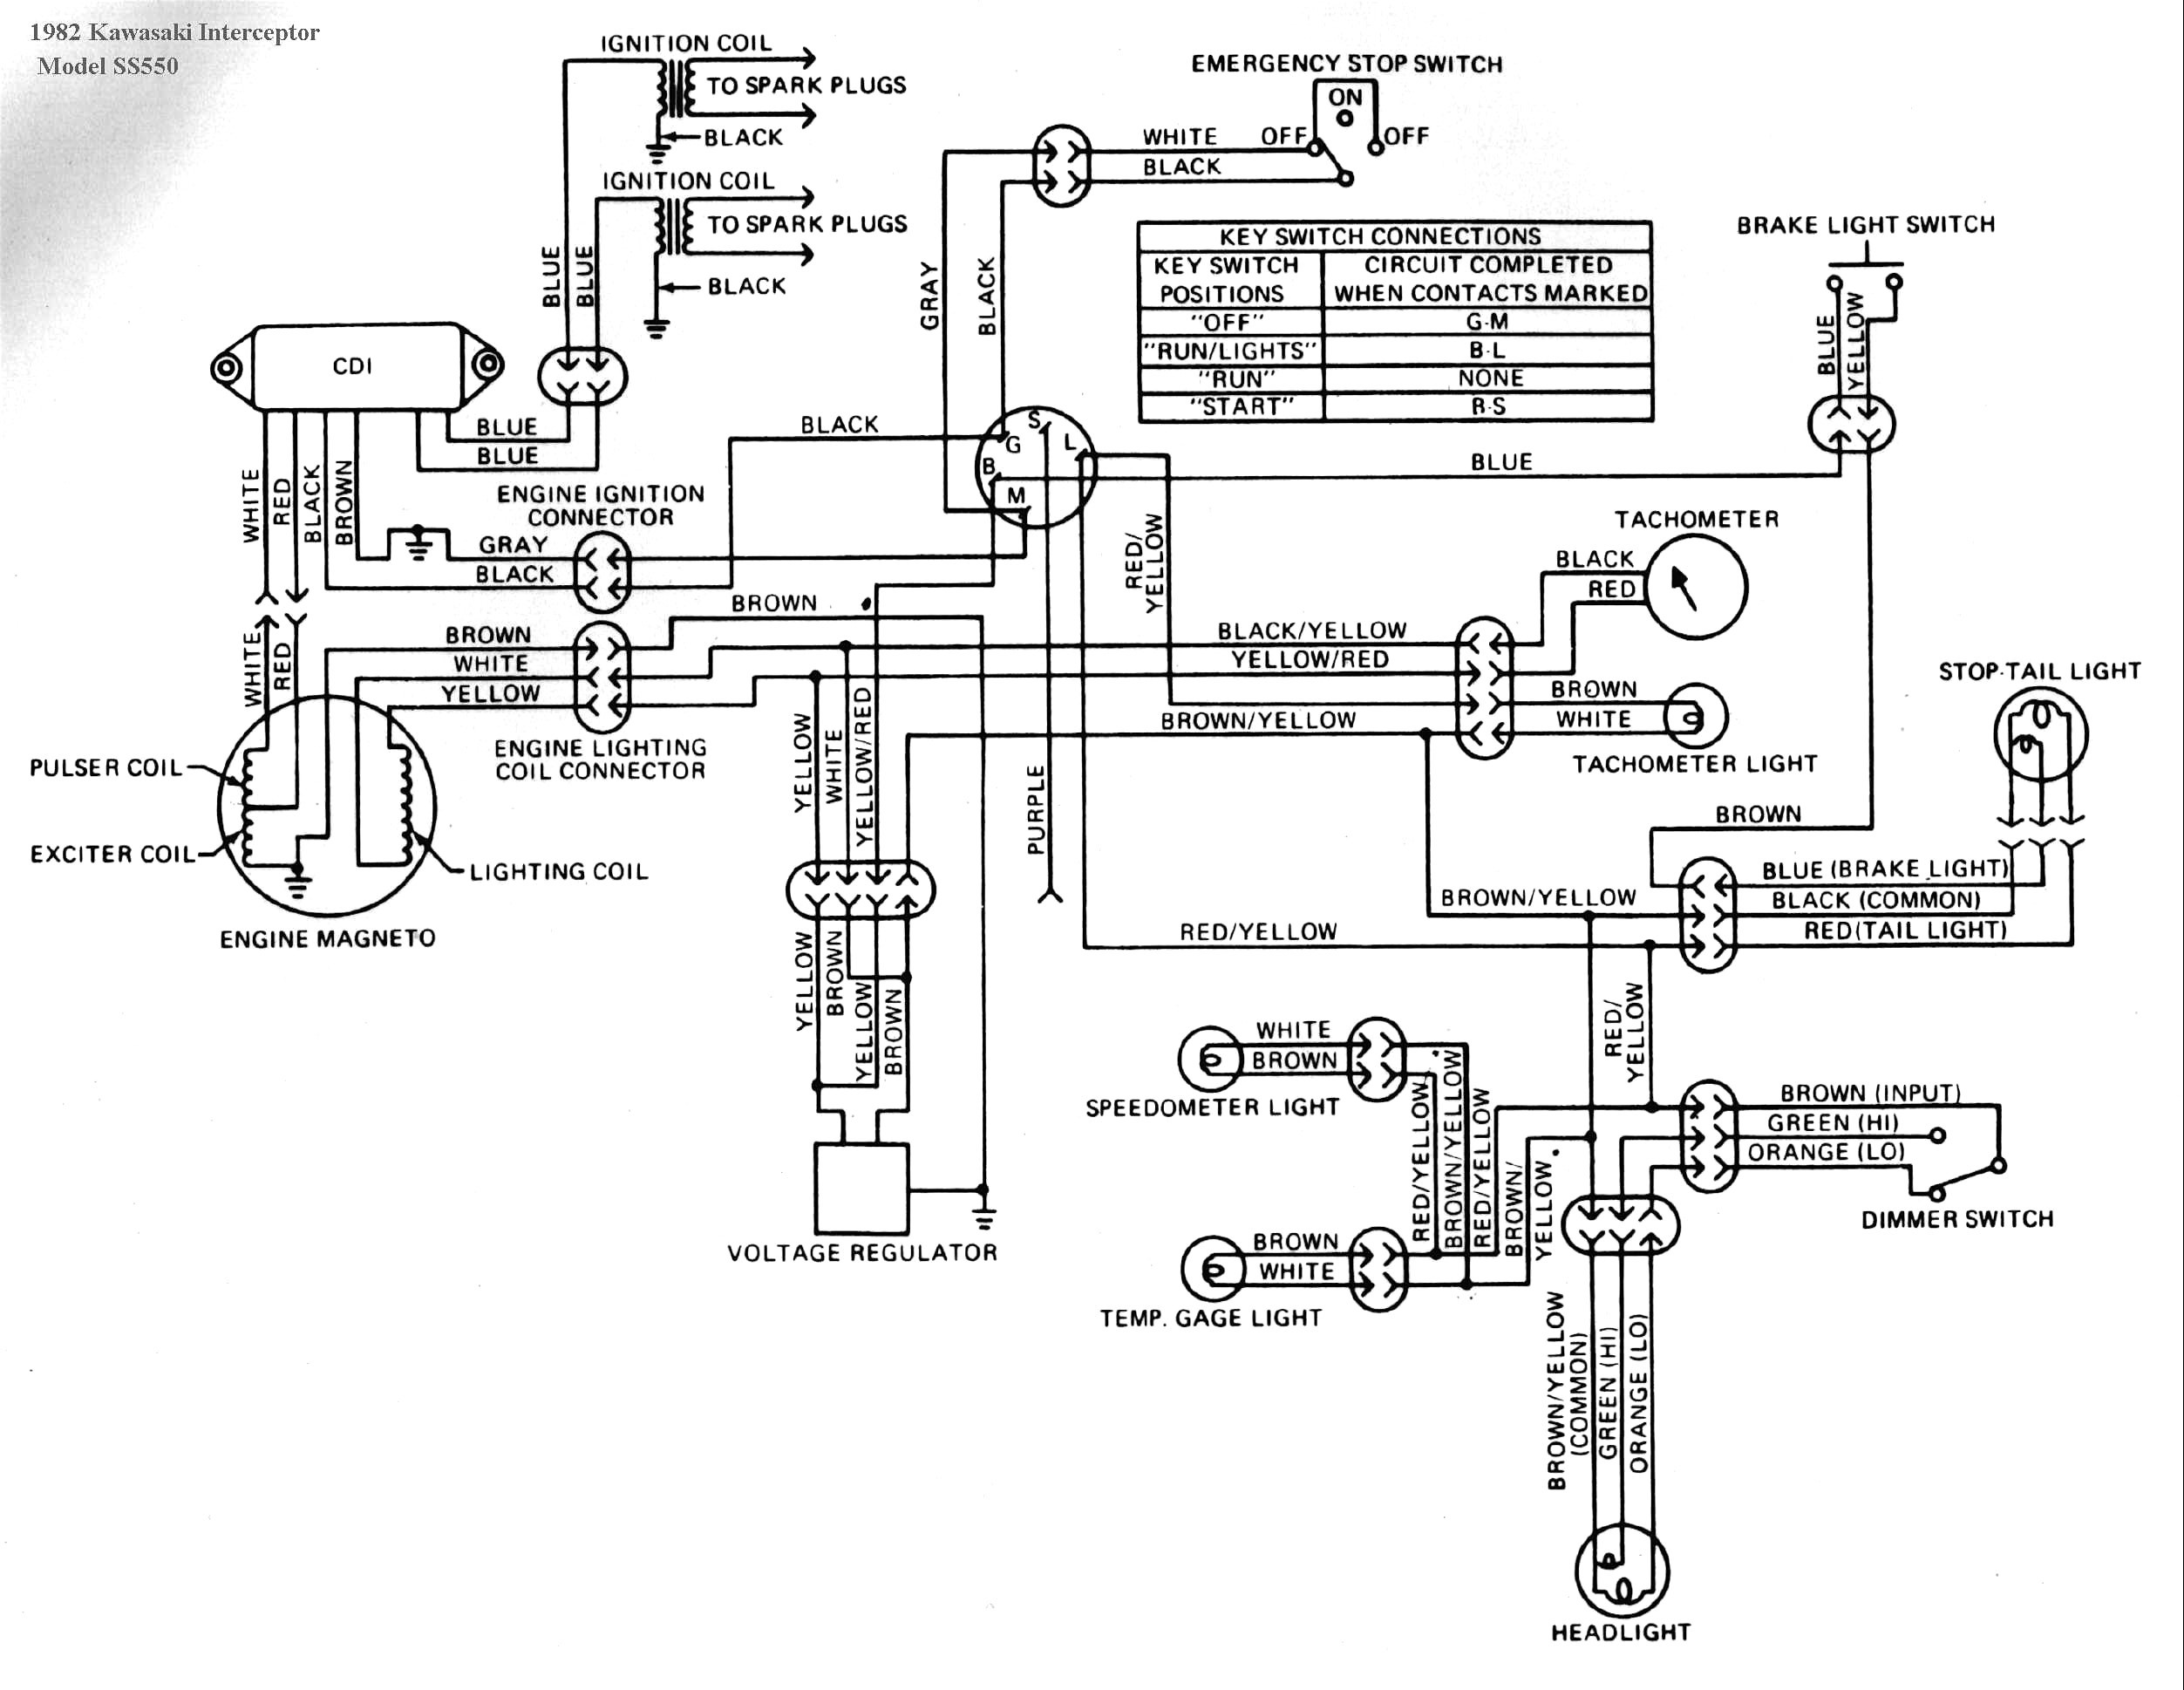 kawasaki klr 650 wiring diagram on 97 f150 trailer wiring diagram